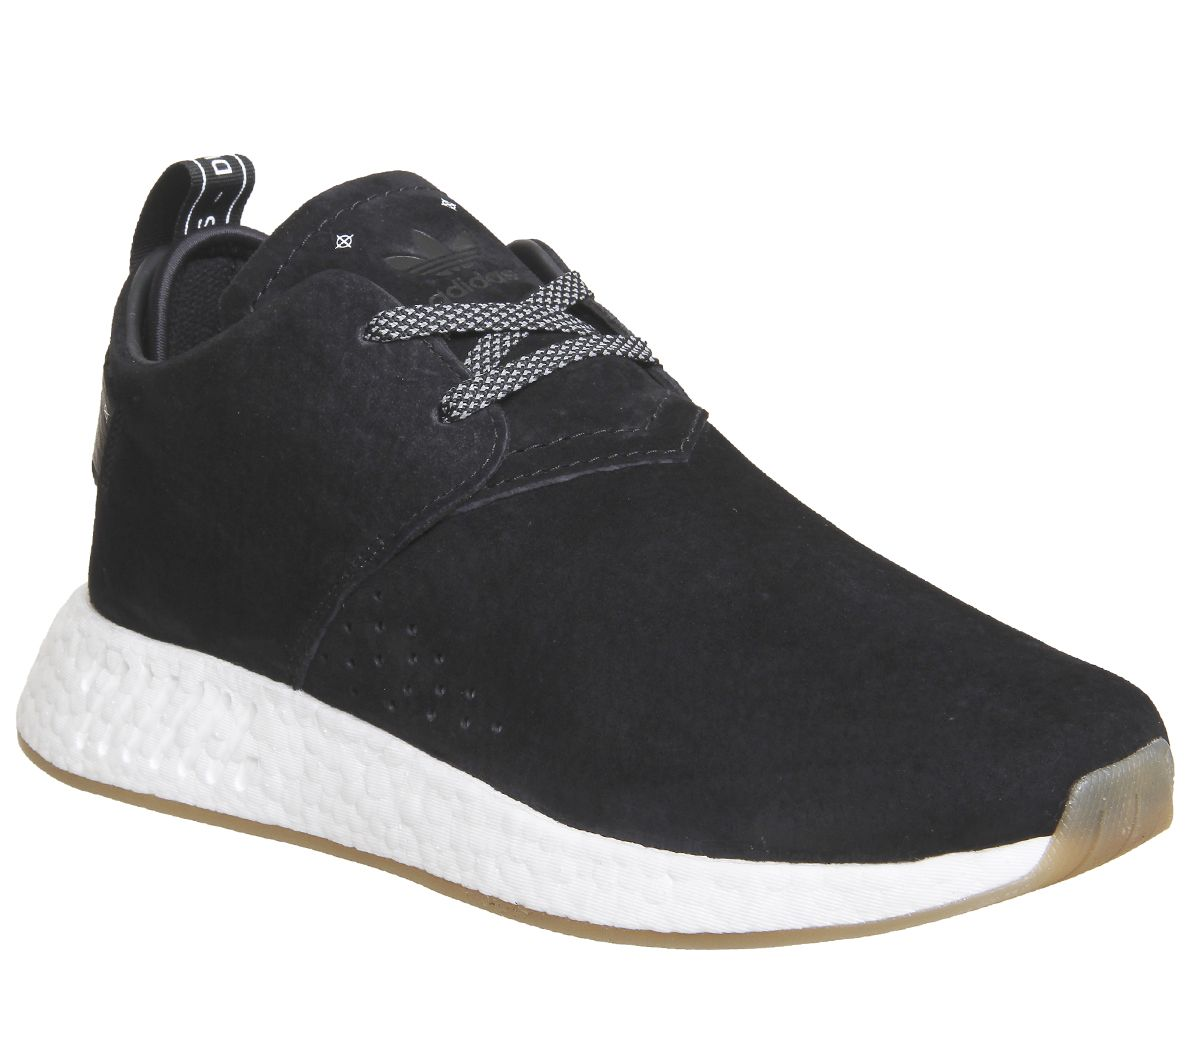 54a936157 adidas Nmd C2 Black White - His trainers